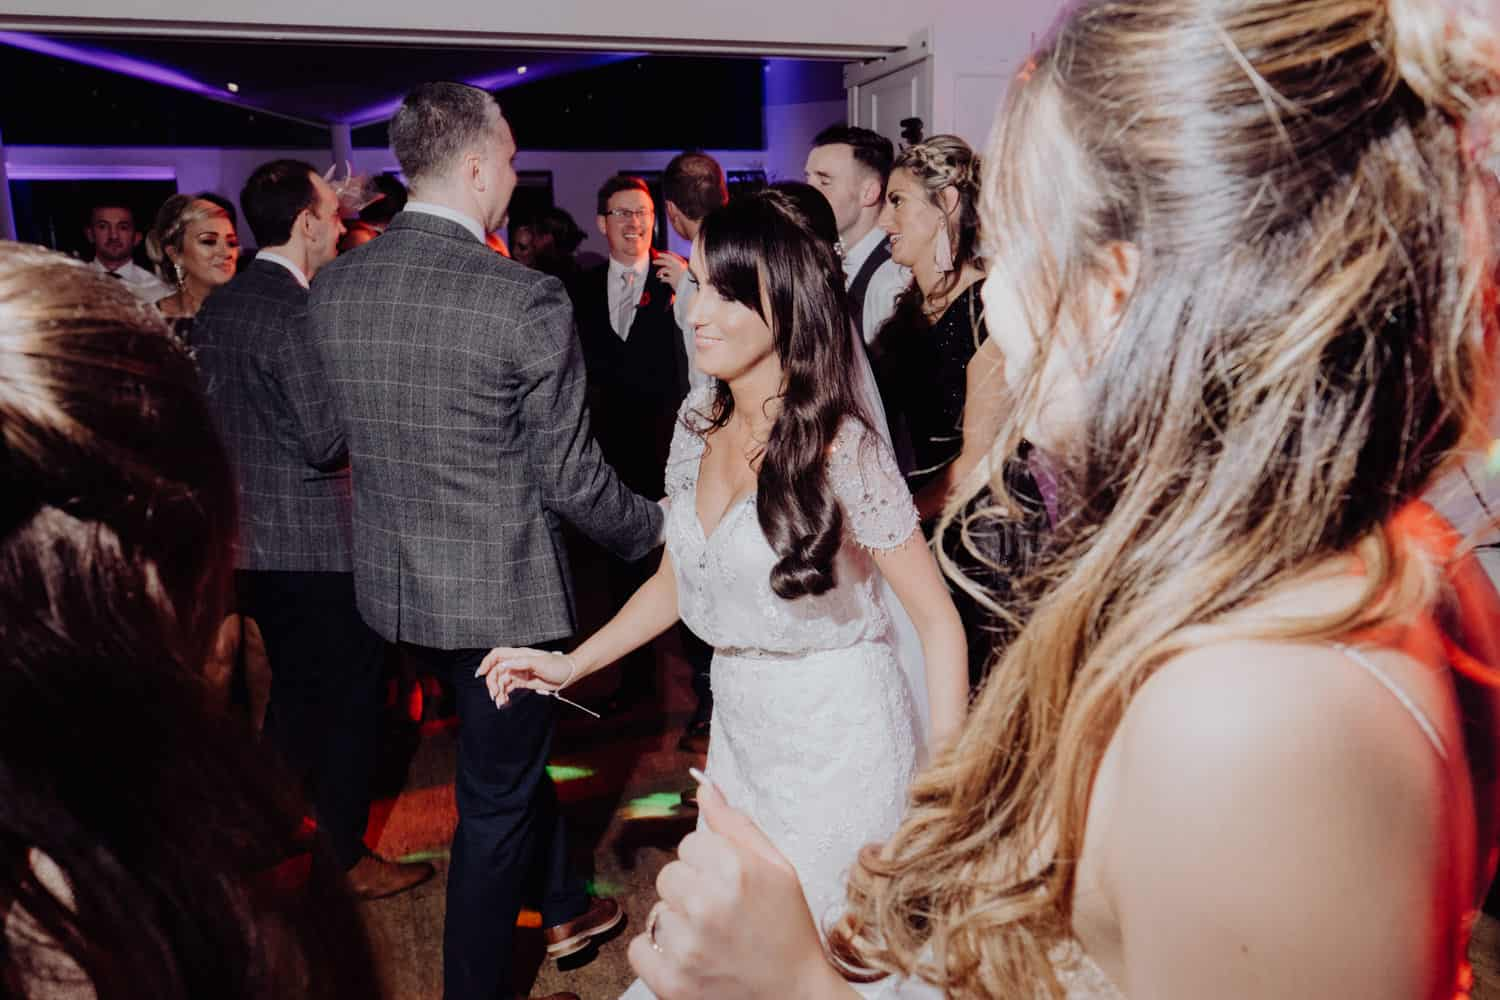 bride and her friends on the dance floor